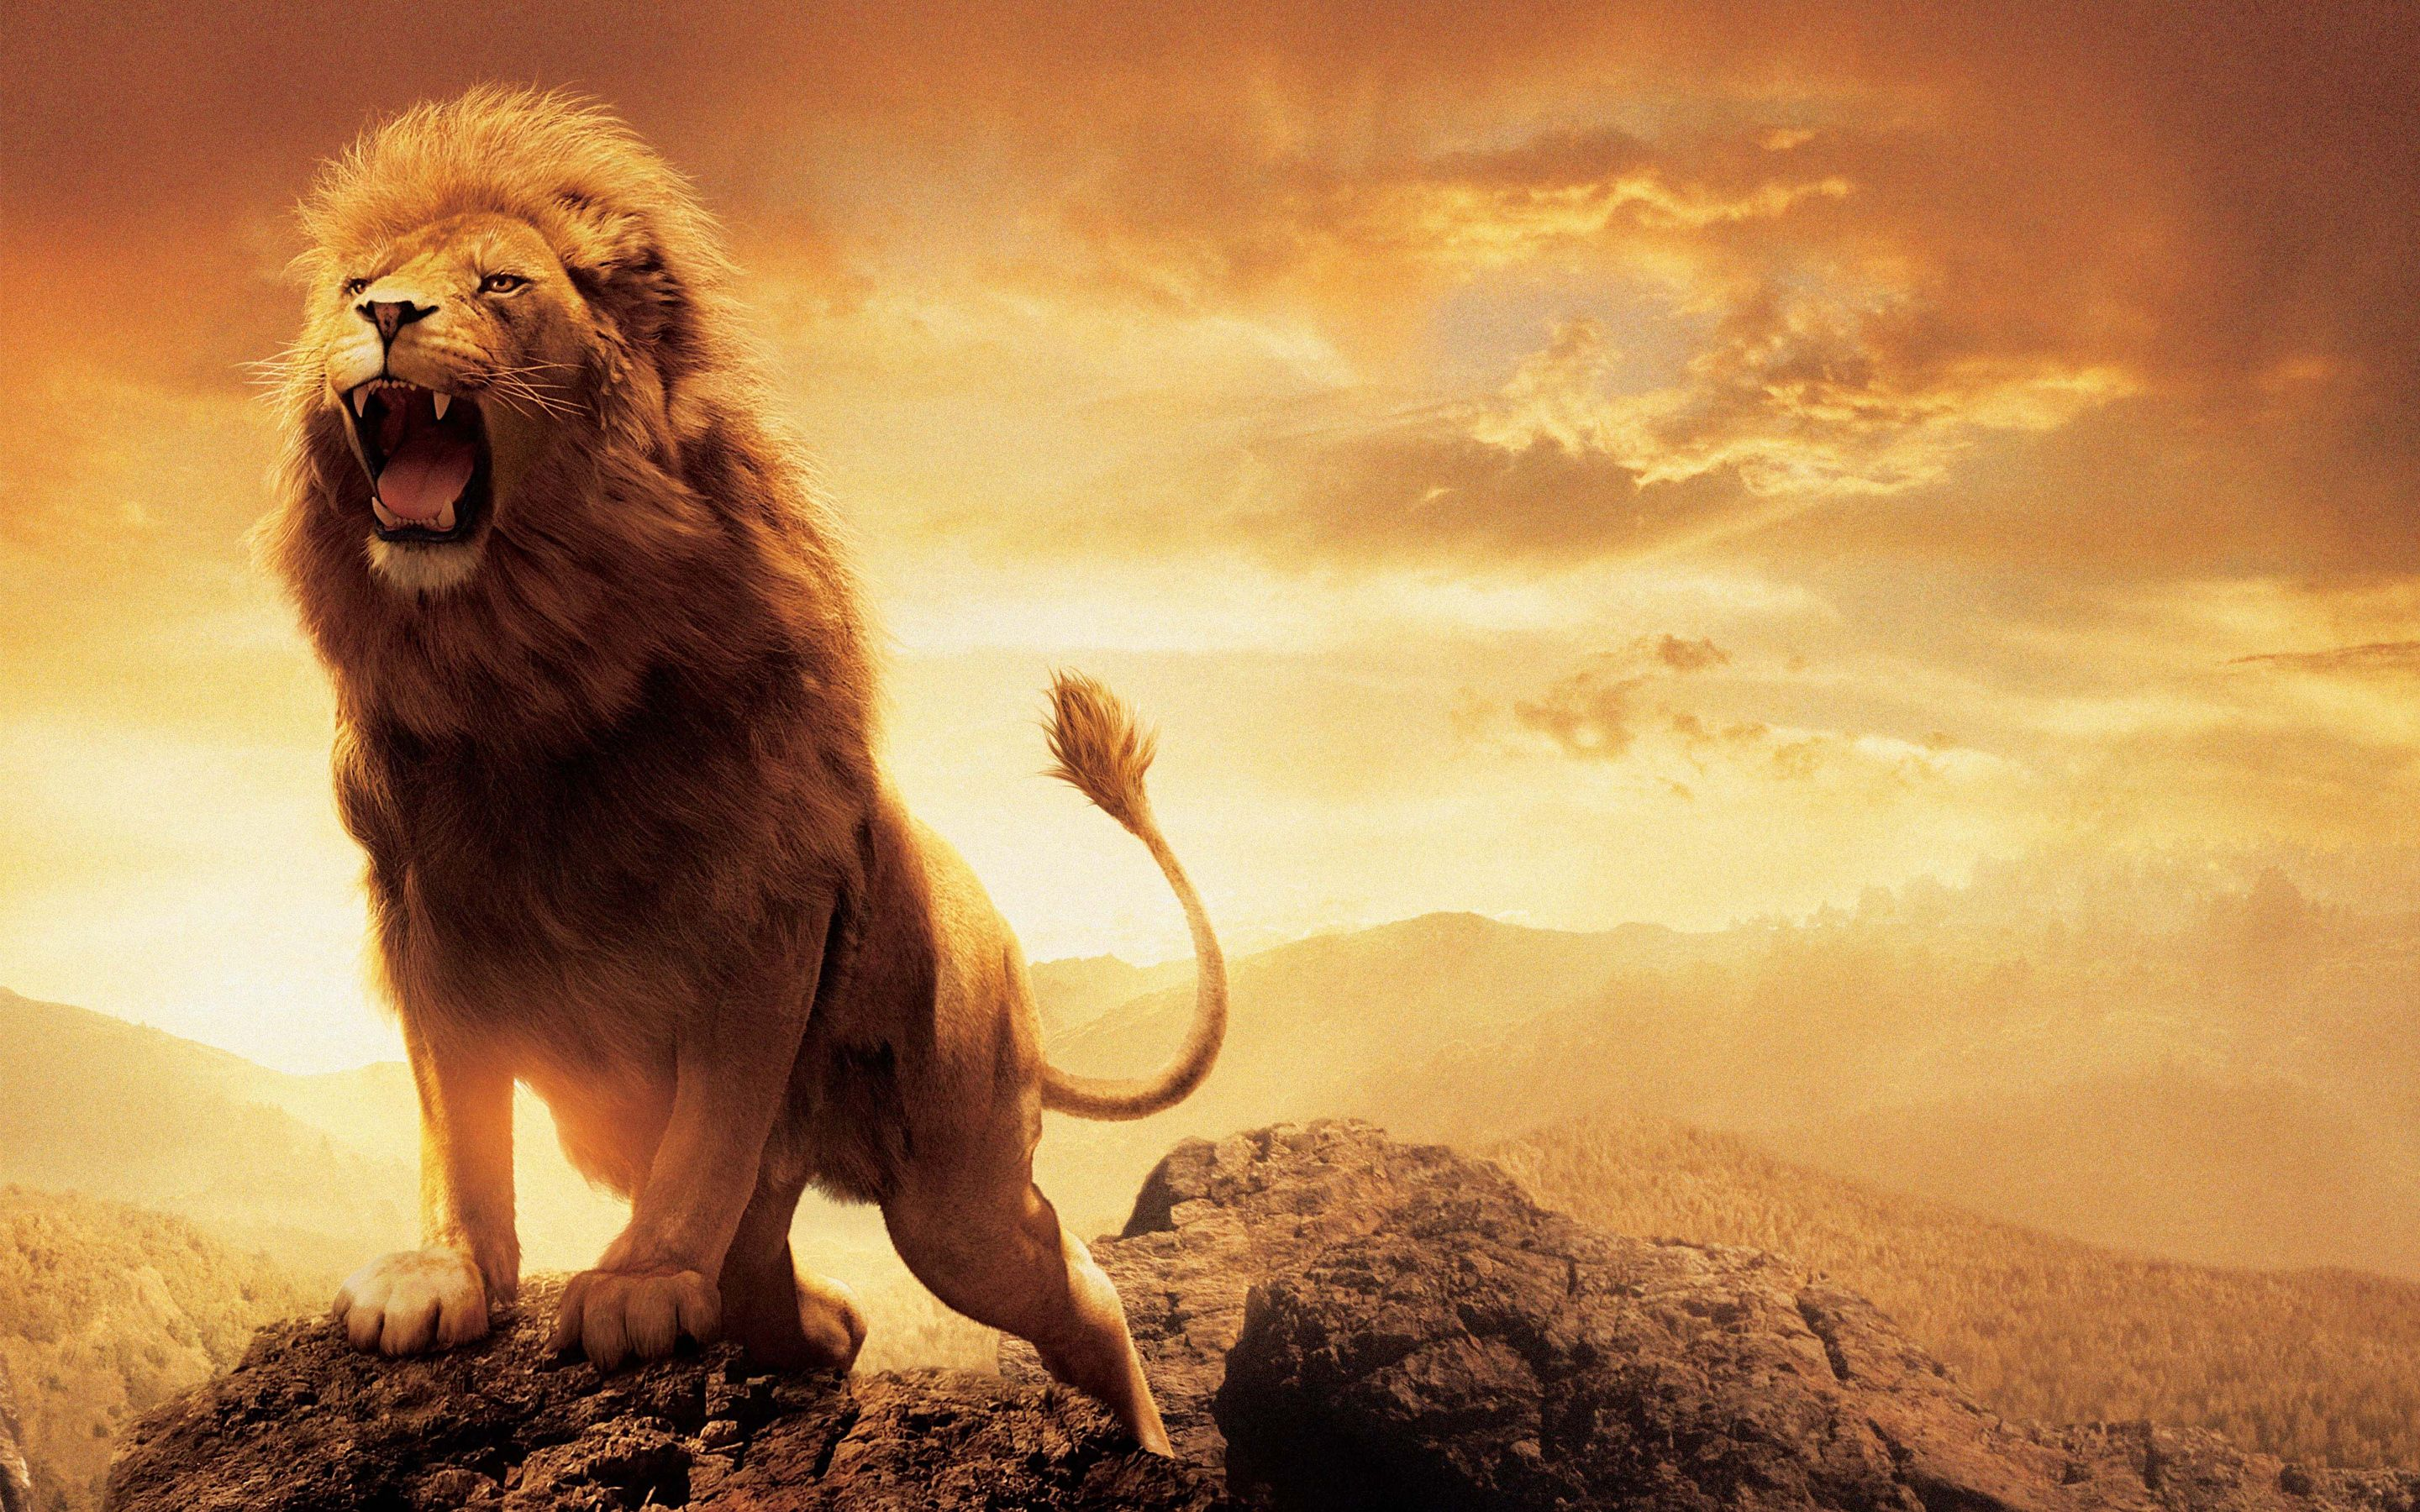 Pin By Hd Wallpapers On Hd Wallpapers Lion Wallpaper Lion Narnia